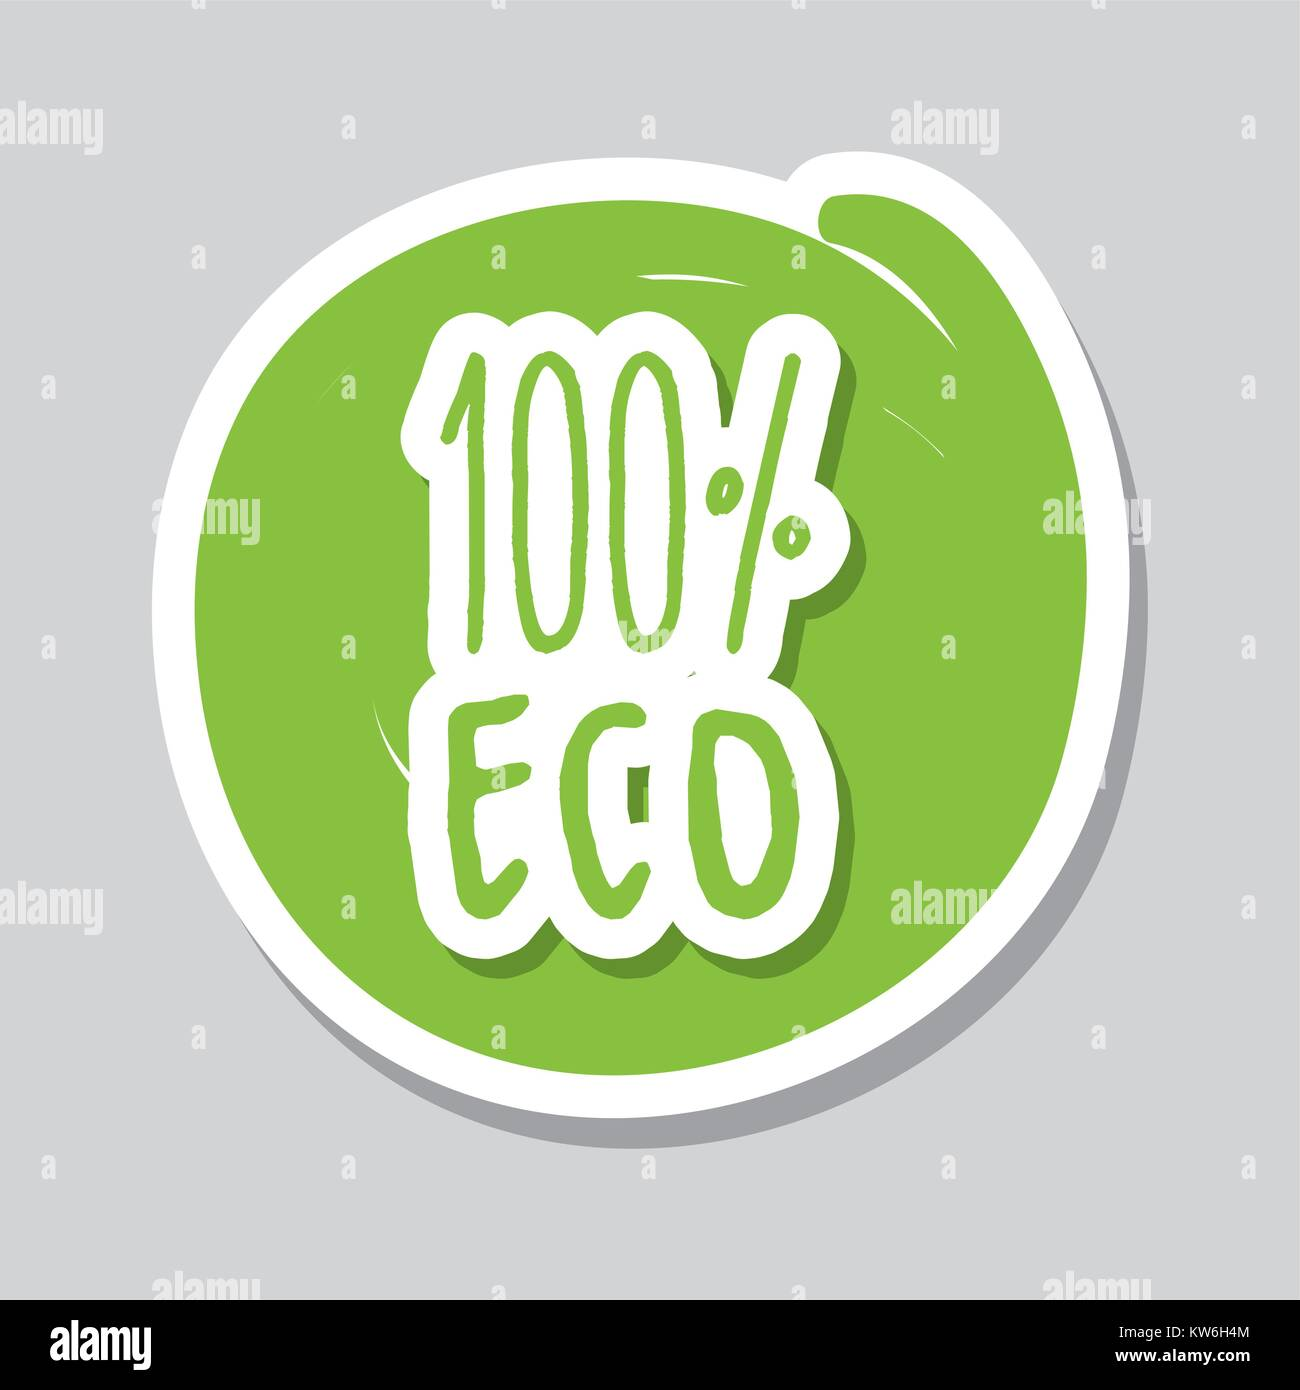 one hundred percent with eco food vector illustration - Stock Vector